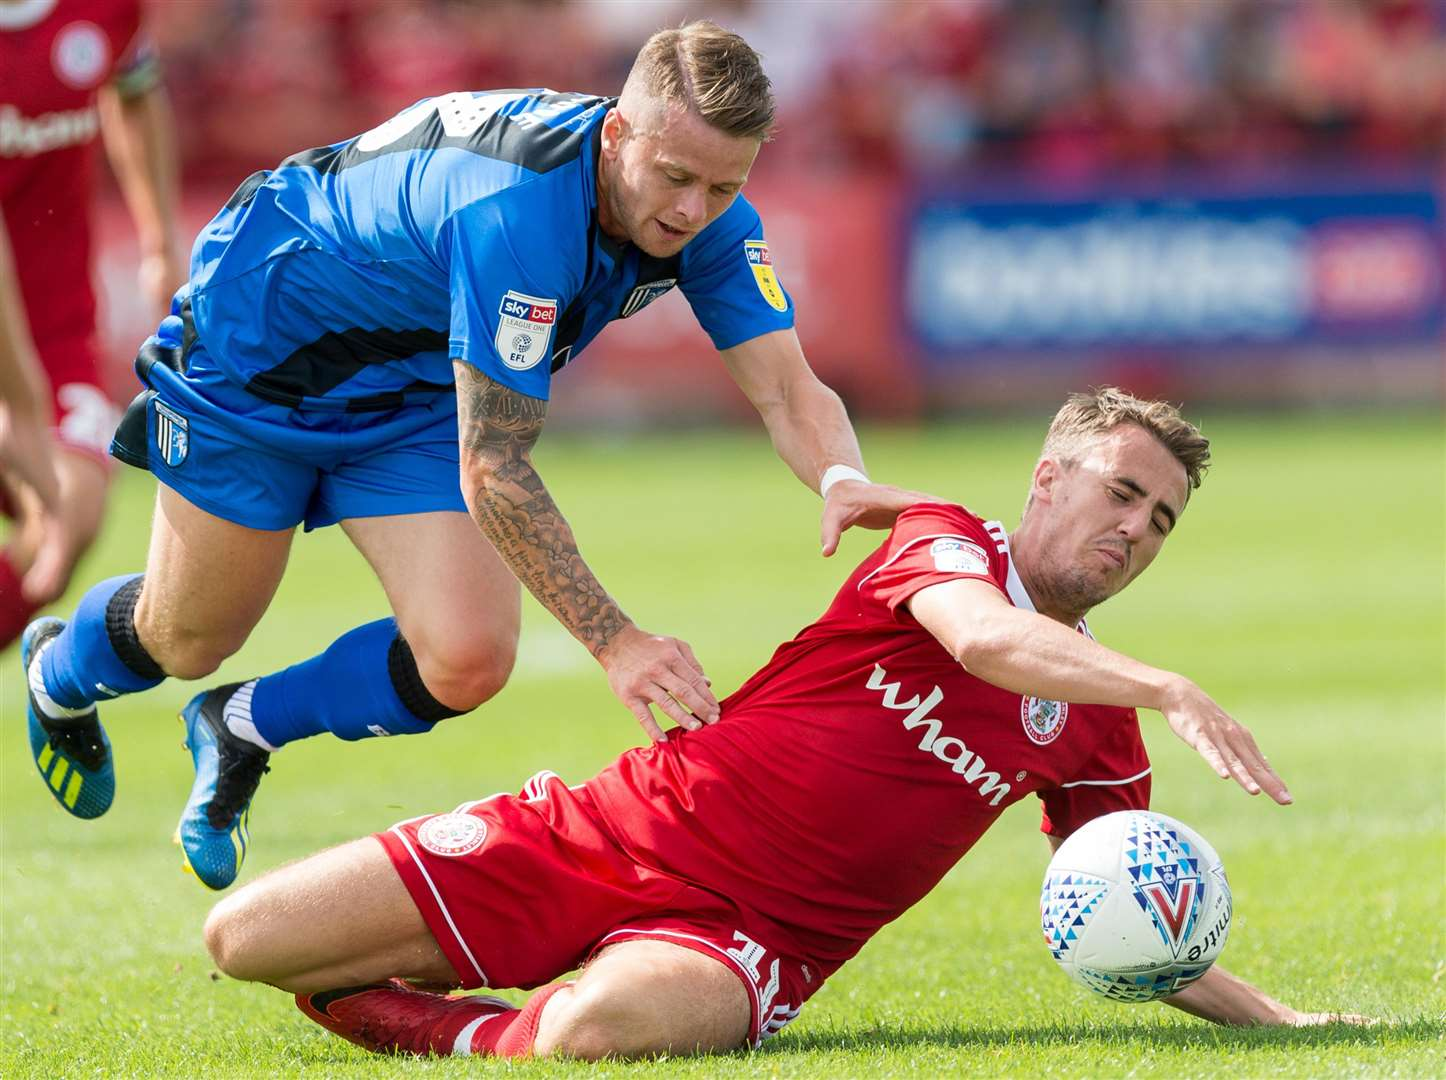 Gillingham's Mark Byrne challenges with Accrington's Sean McConville. Picture: Ady Kerry